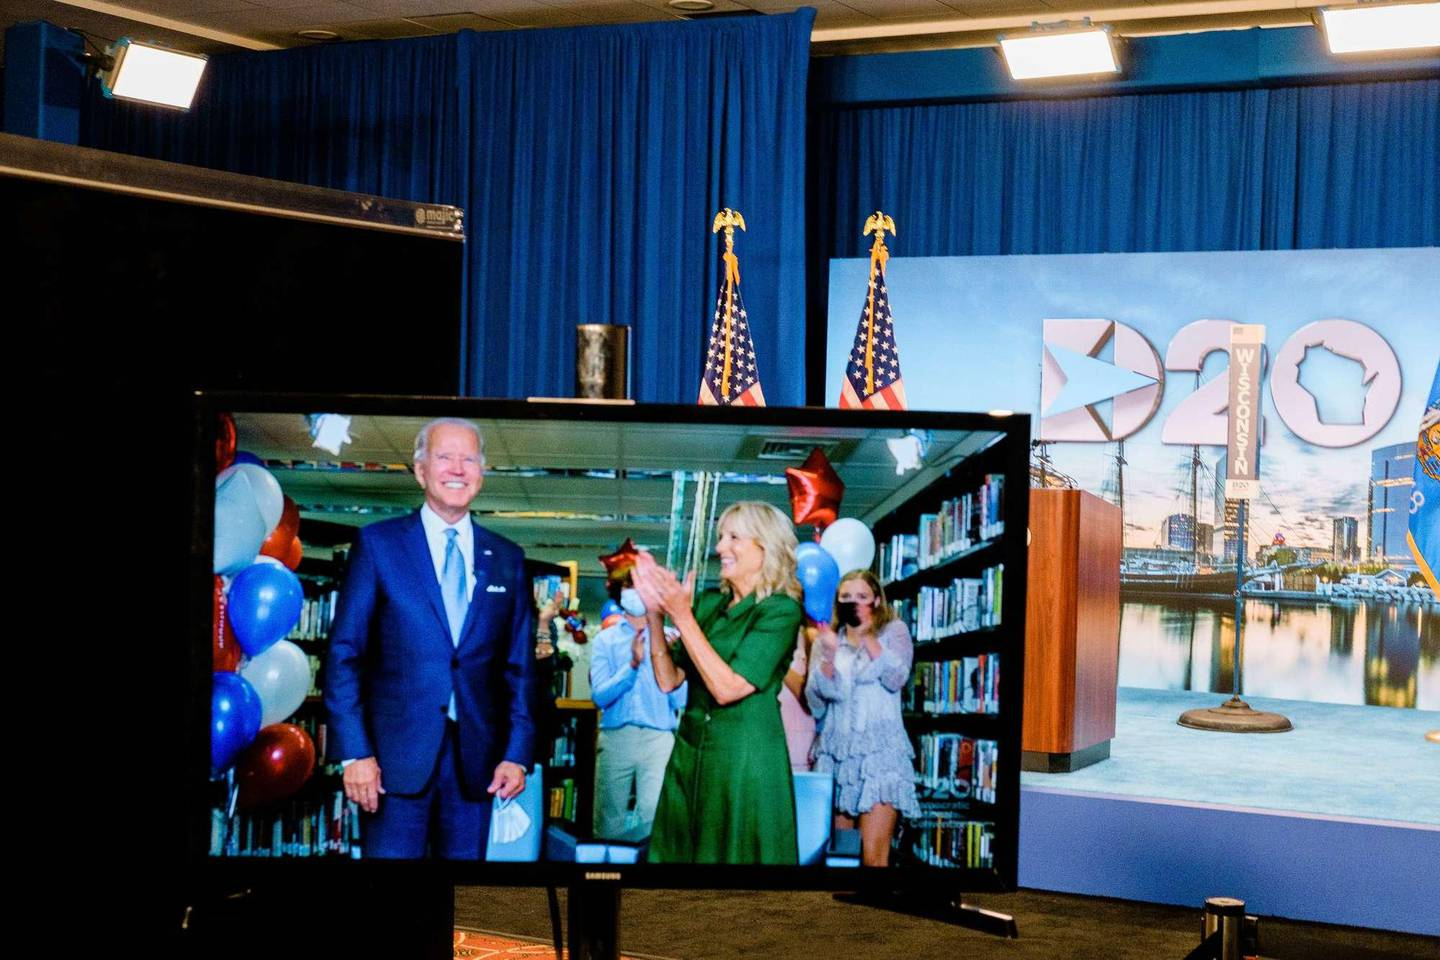 MILWAUKEE, WISCONSIN - AUGUST 18: Democratic presidential candidate Joe Biden and wife Dr. Jill Biden are seen in a video feed from Delaware after winning the votes to become the nominee on the second night of the 2020 Democratic National Convention at the Wisconsin Center on August 18, 2020 in Milwaukee, Wisconsin. The convention, which was once expected to draw 50,000 people to Milwaukee, Wisconsin, is now taking place virtually due to the coronavirus pandemic.   Gabriela Bhaskar-Pool/Getty Images/AFP == FOR NEWSPAPERS, INTERNET, TELCOS & TELEVISION USE ONLY ==